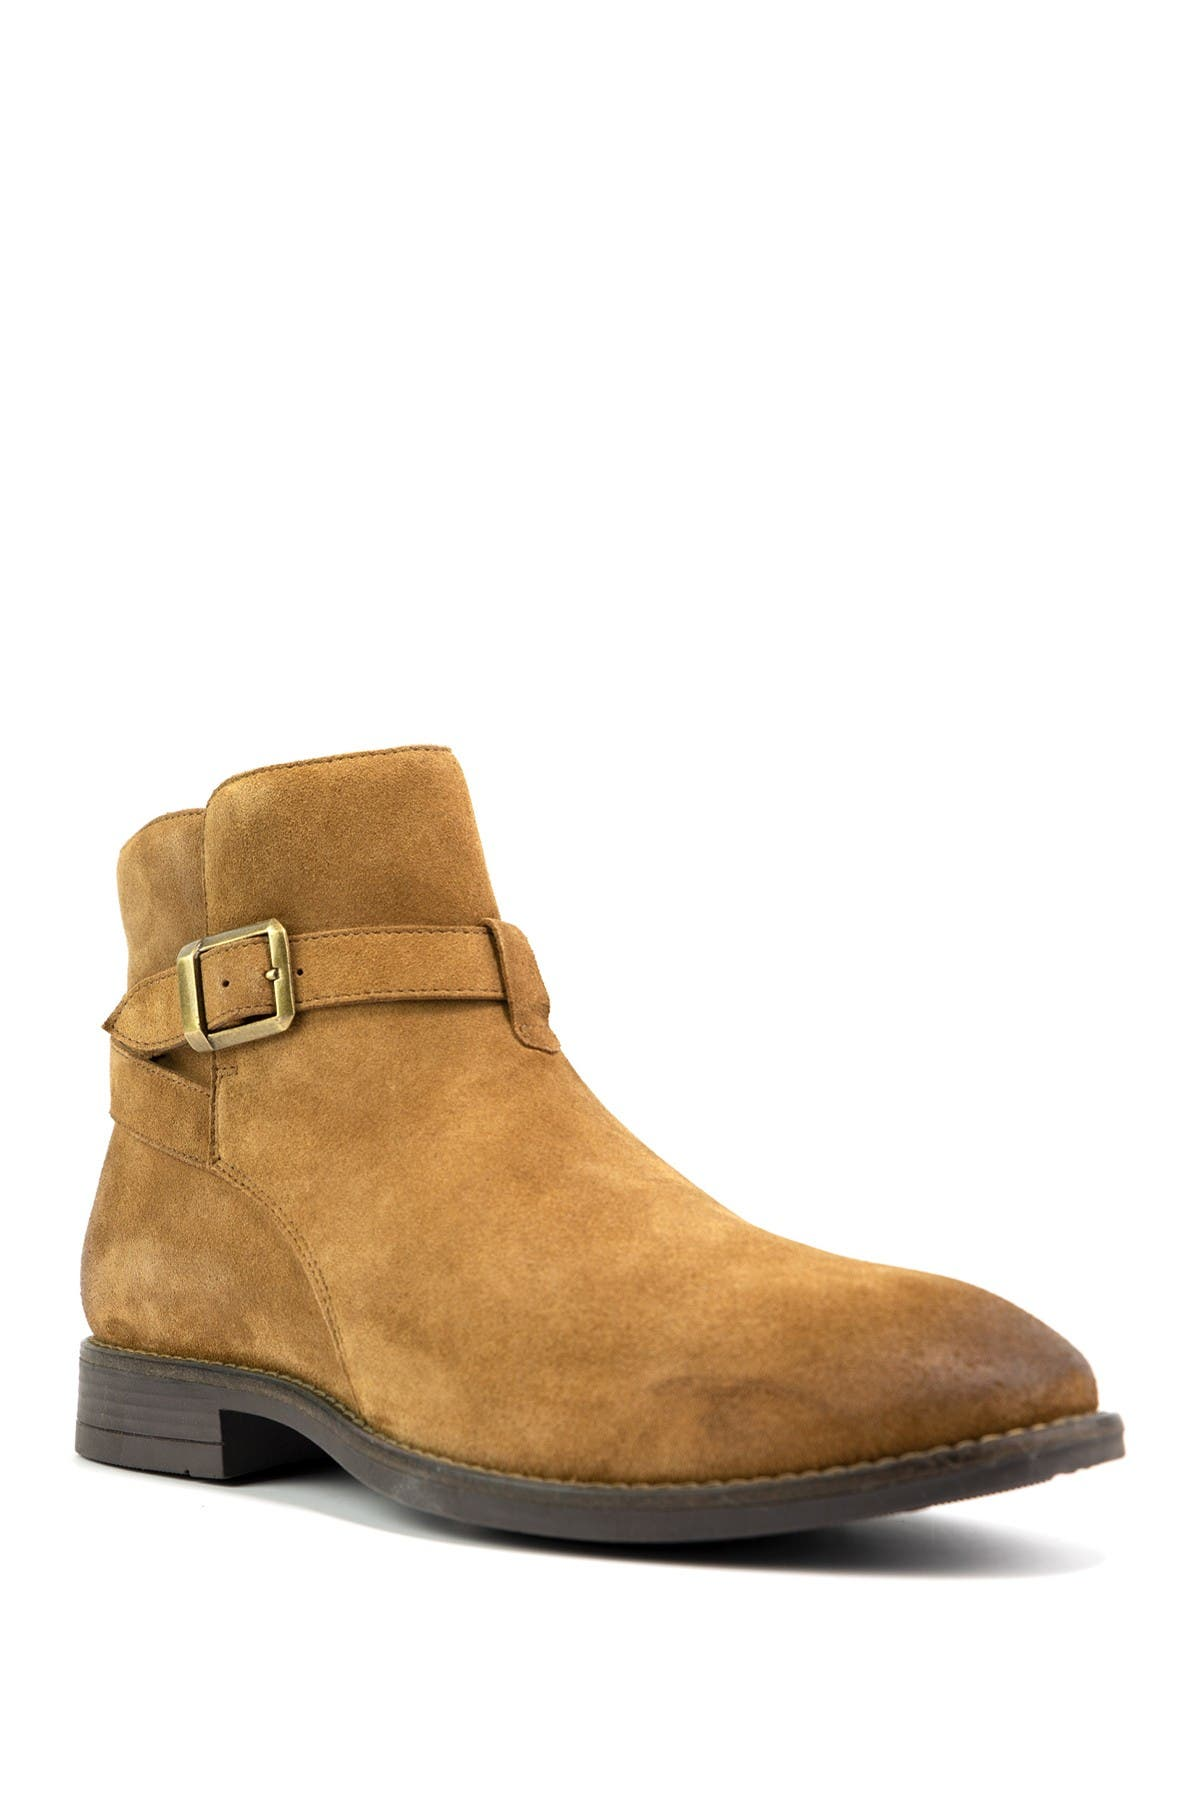 Image of Crevo Douglas Buckled Suede Boot